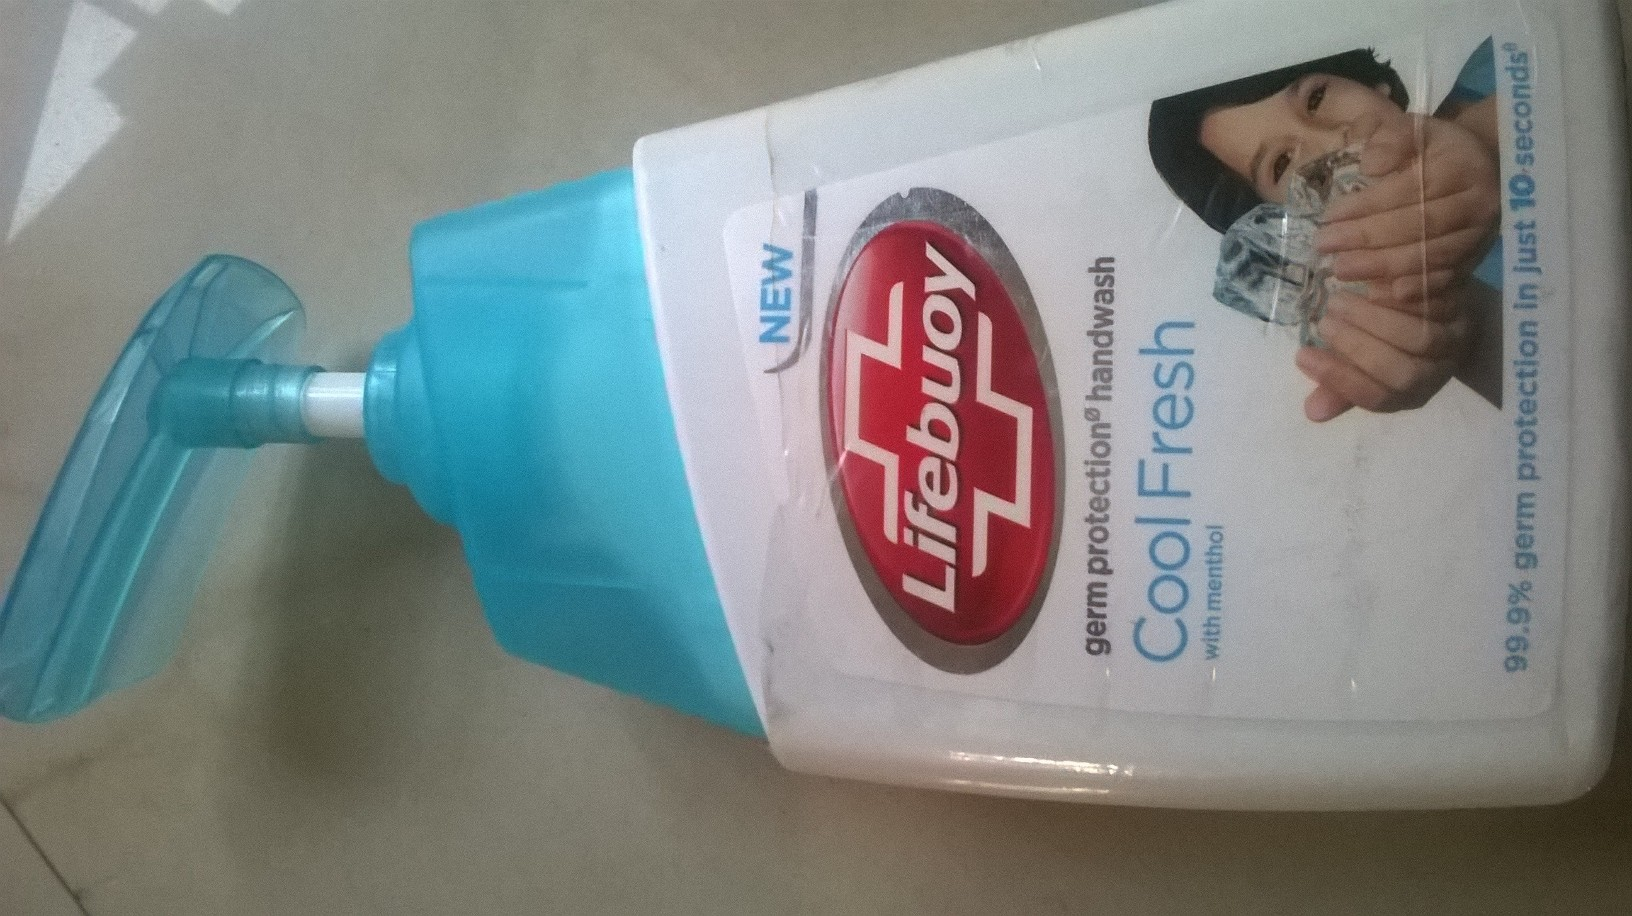 Lifebuoy Hand Wash Review Lifebuoy Hand Wash Prices